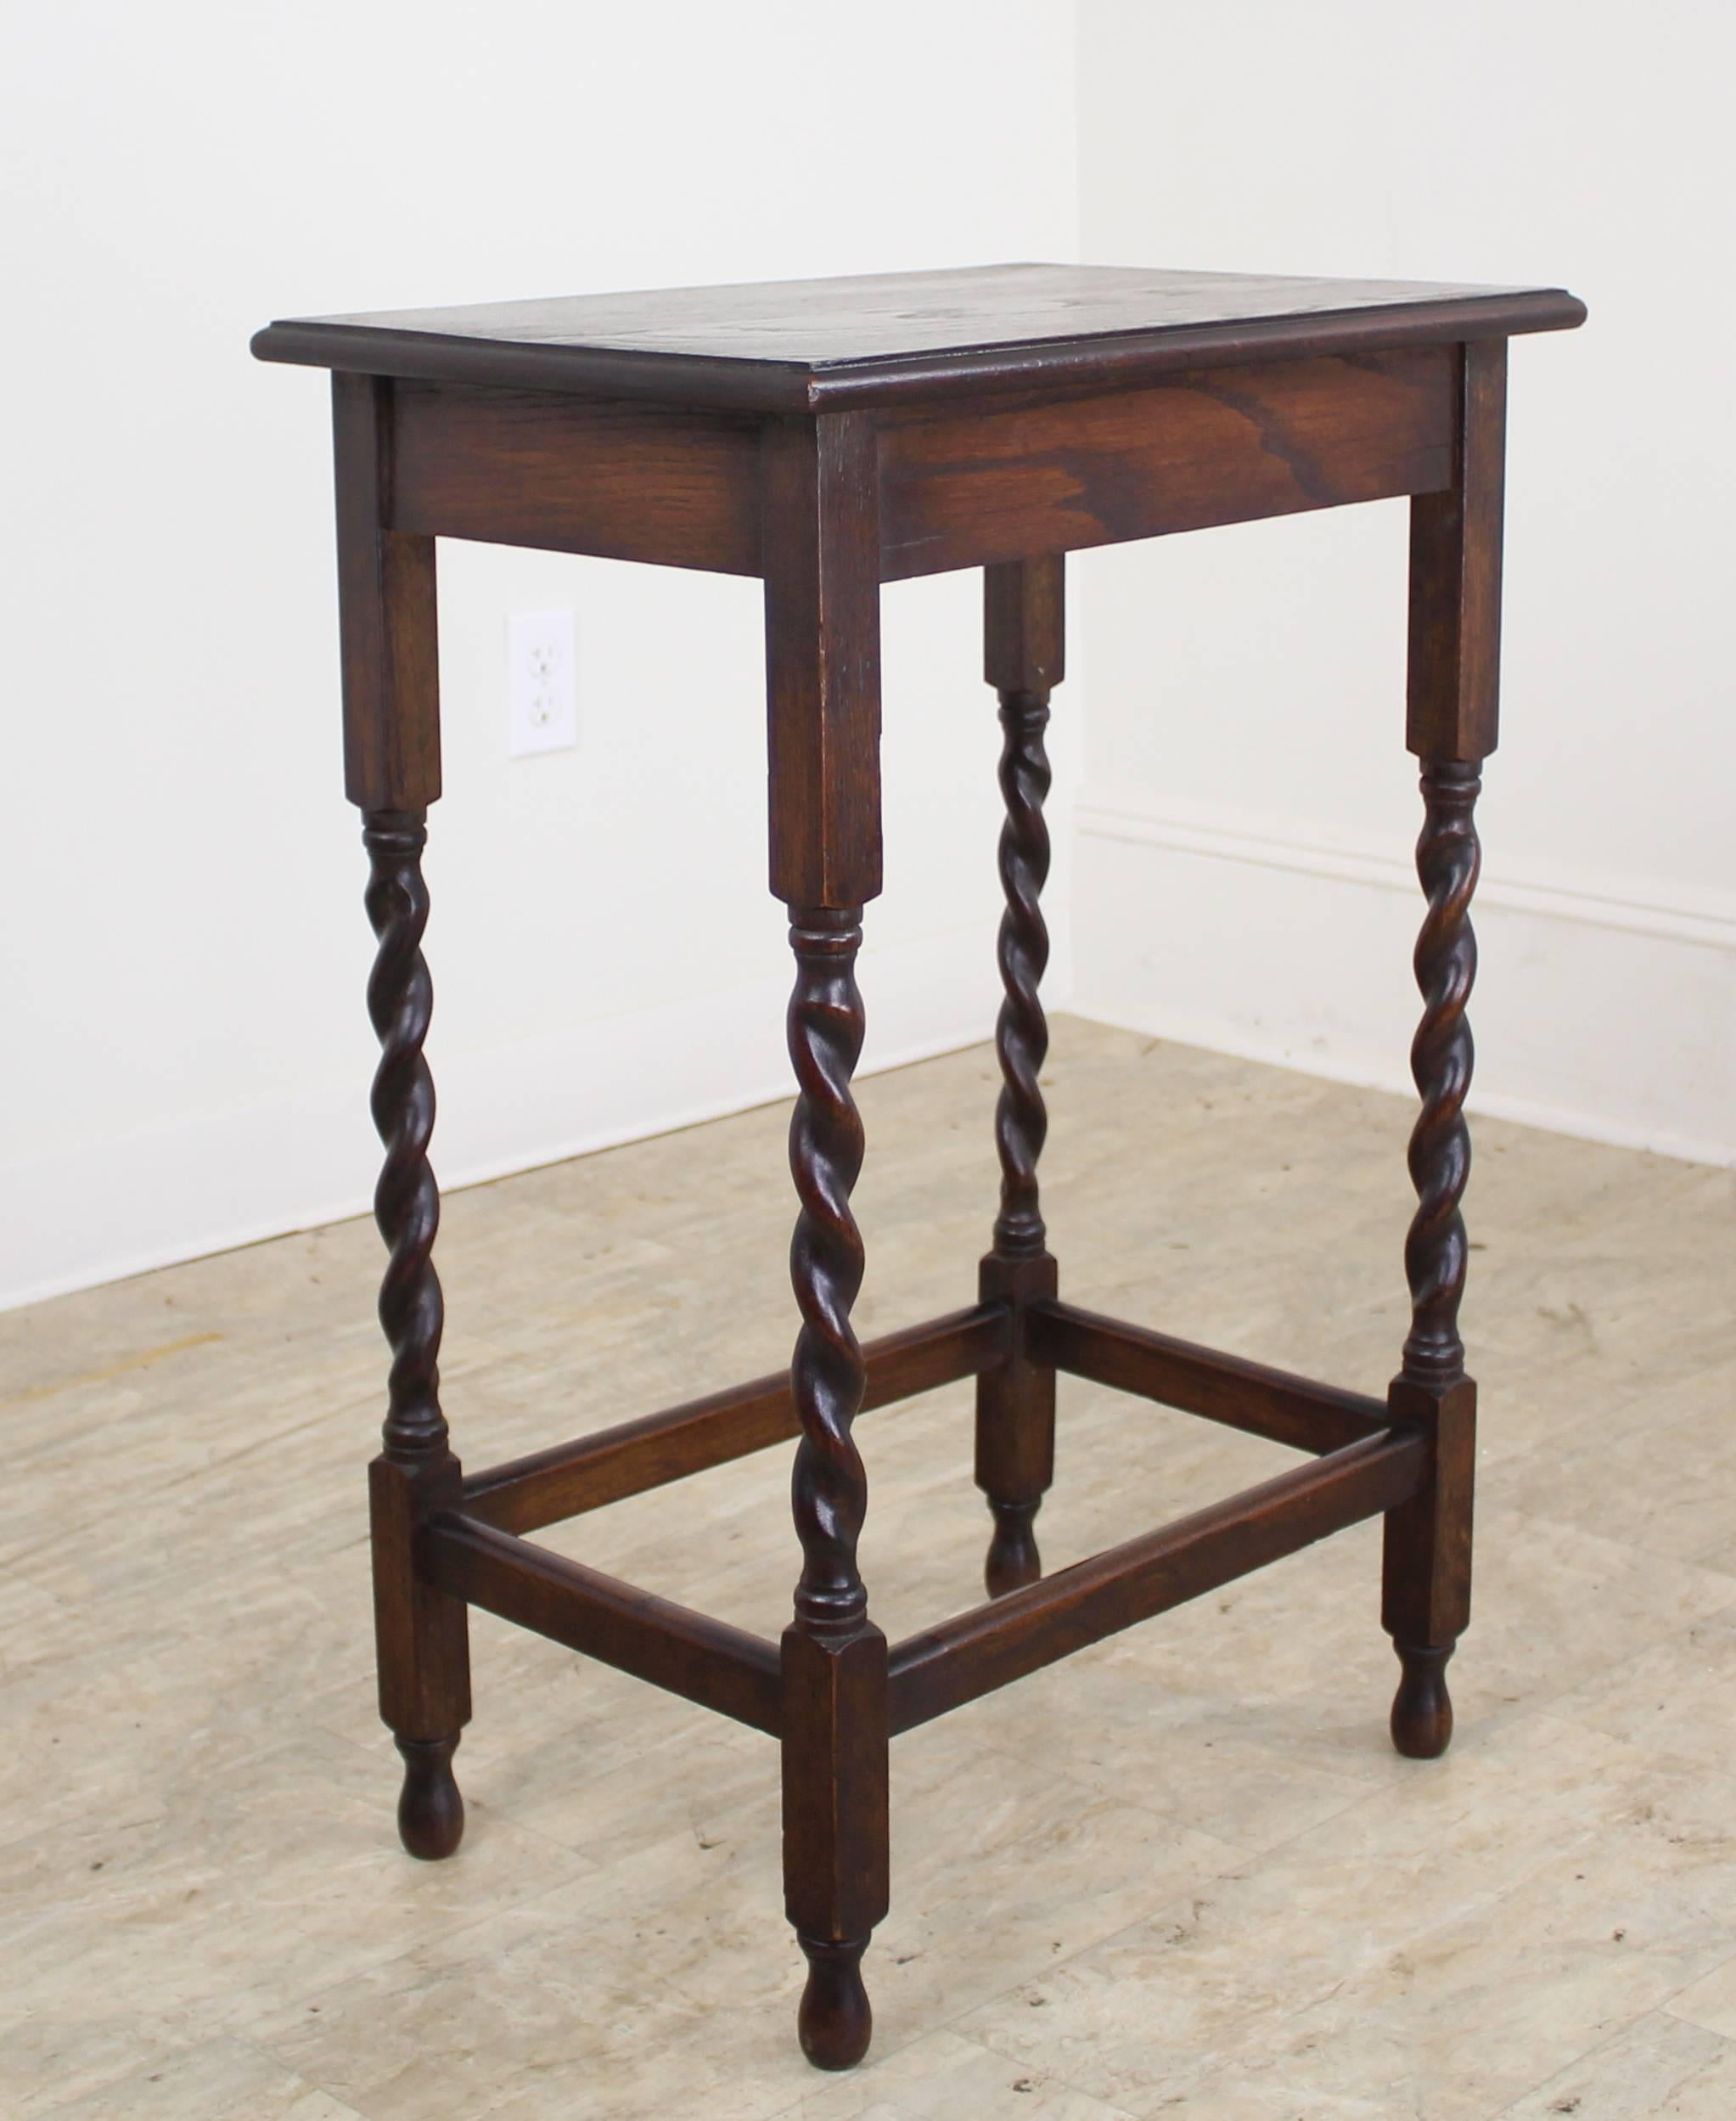 A Charming Simple Occasional Table In Dark Oak With Eye Catching Barley  Twist Detail. Would